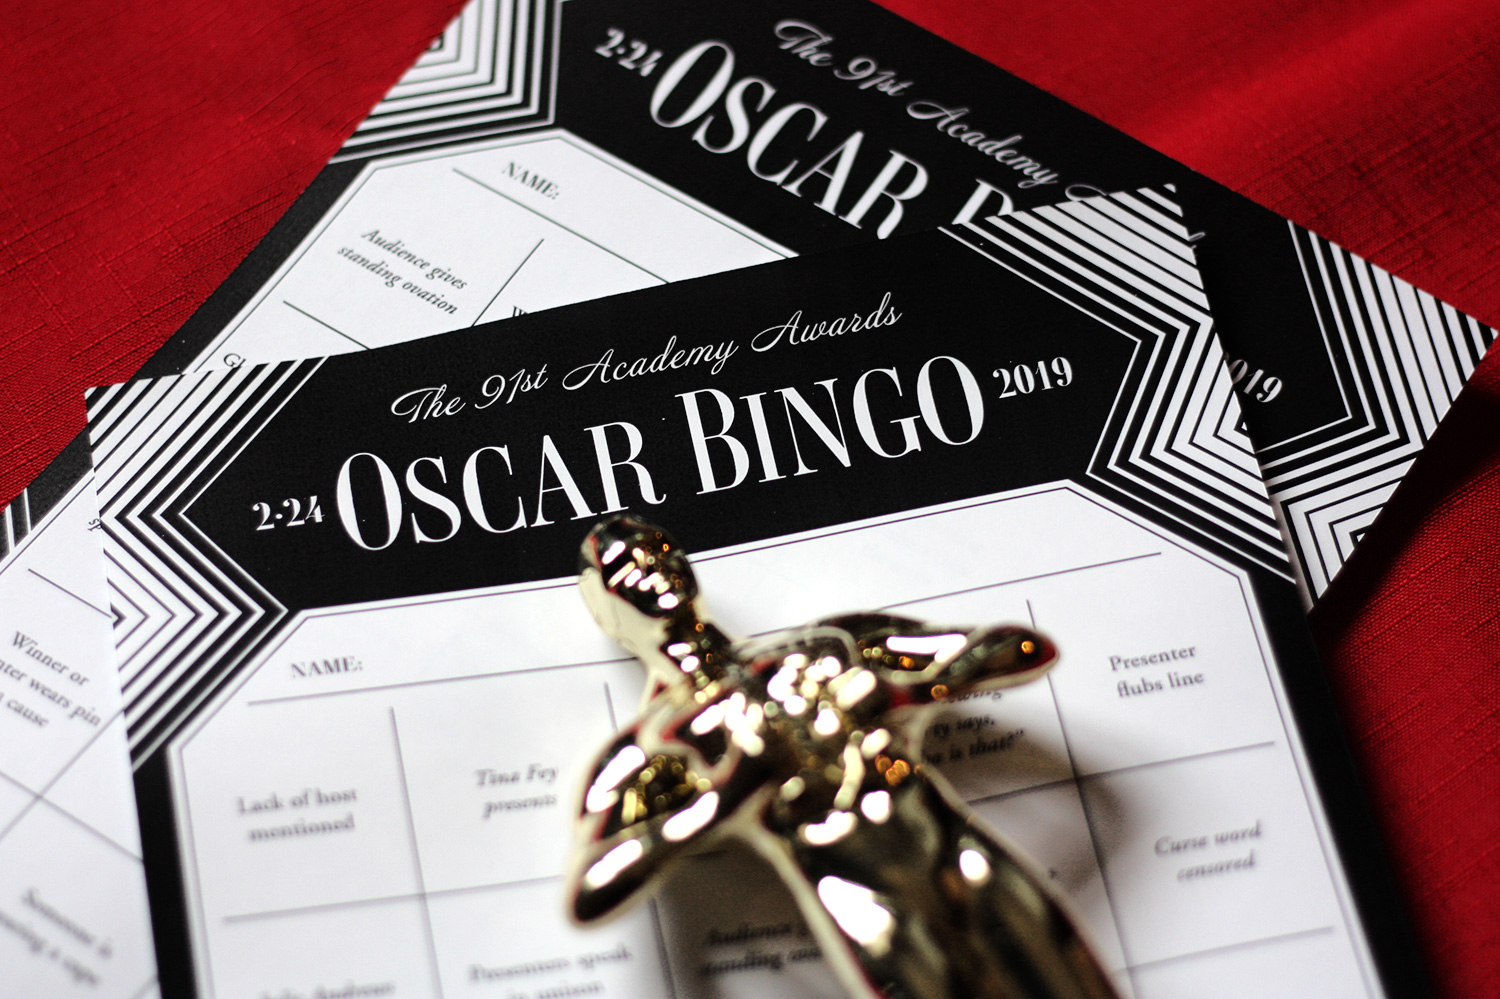 Printable Oscars Bingo Updated With 2019 Oscars Presenters Nominees